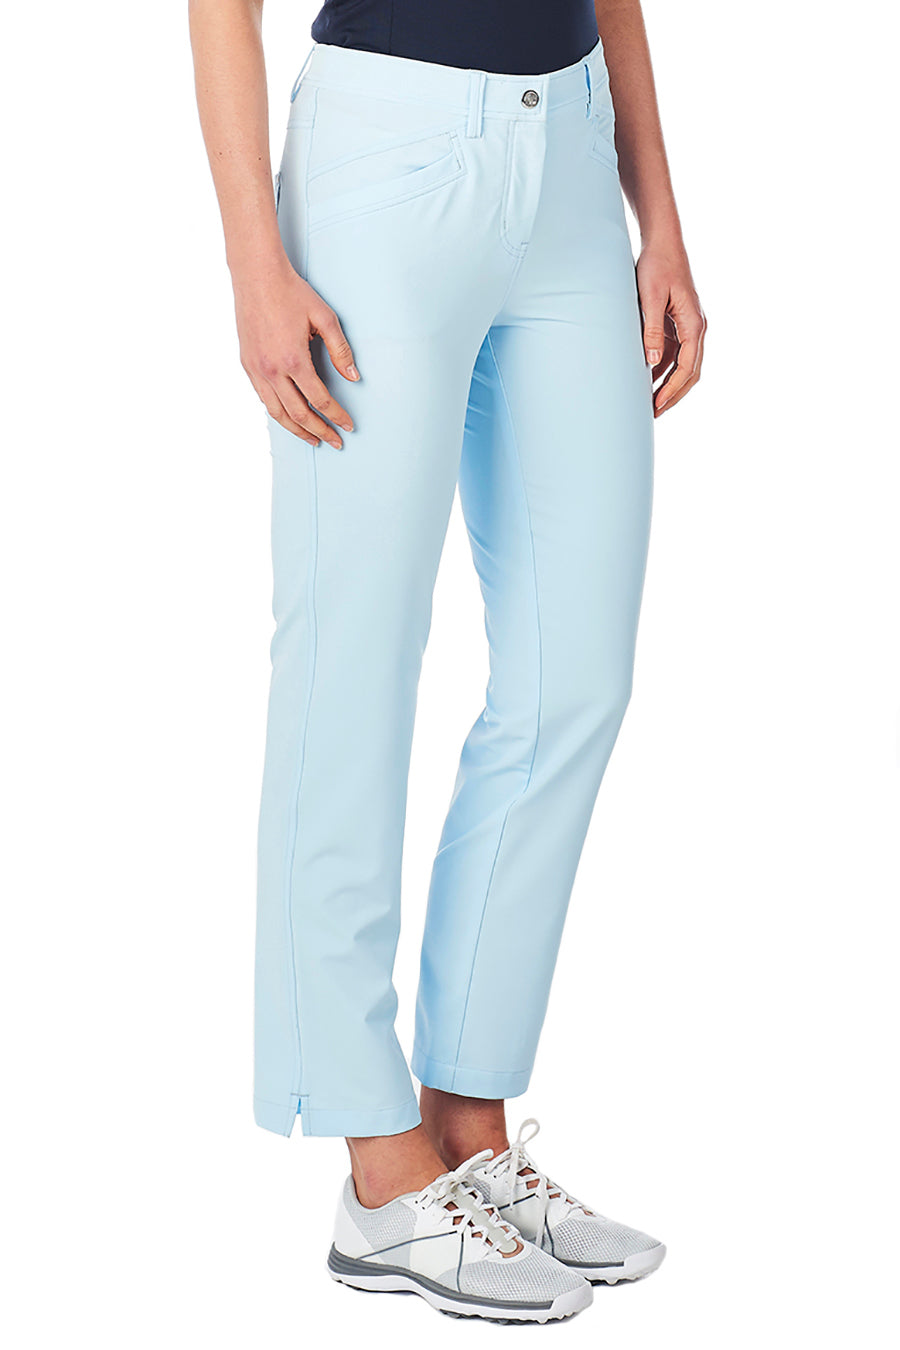 women's summer clothing, Nivo Mabel Ankle Pants-Ice Blue, Pants, Nivo, , , ladies golf and tennis fashion, golf accessories - From the Red Tees.